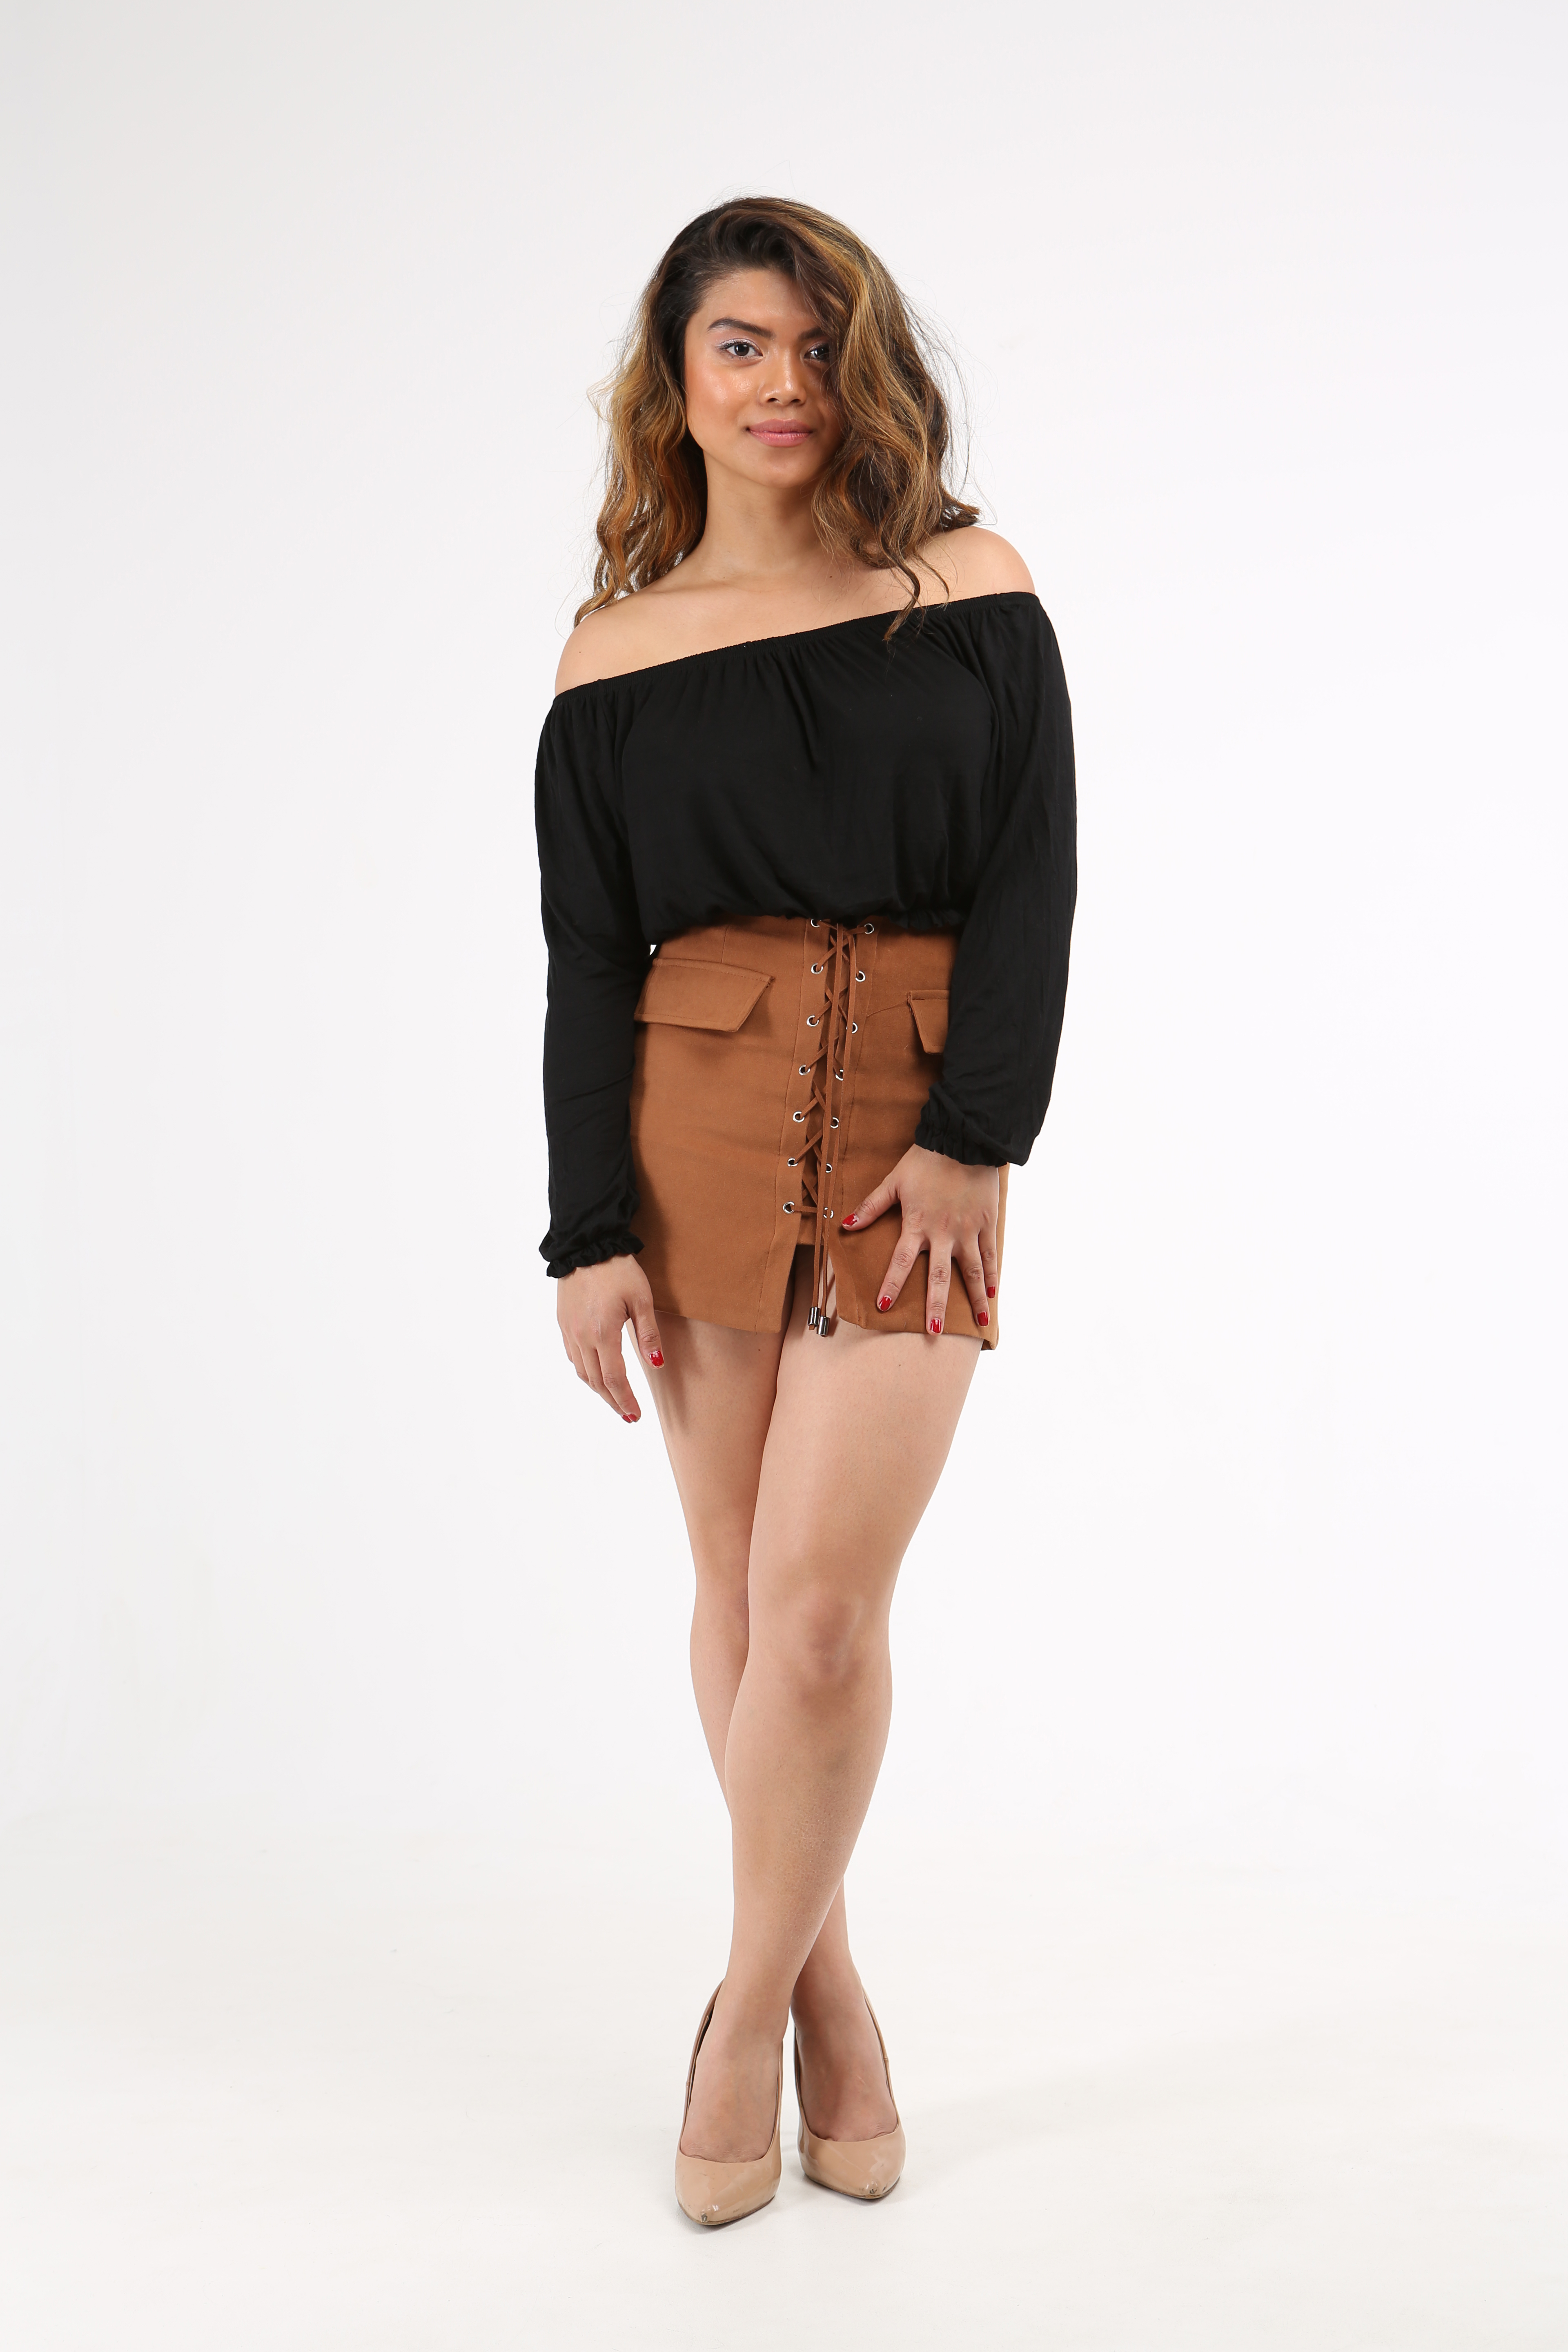 f6979cea58511 The French 95 - Swiss online shopping for women s fashion - Shop black  bardot gypsy tops ...